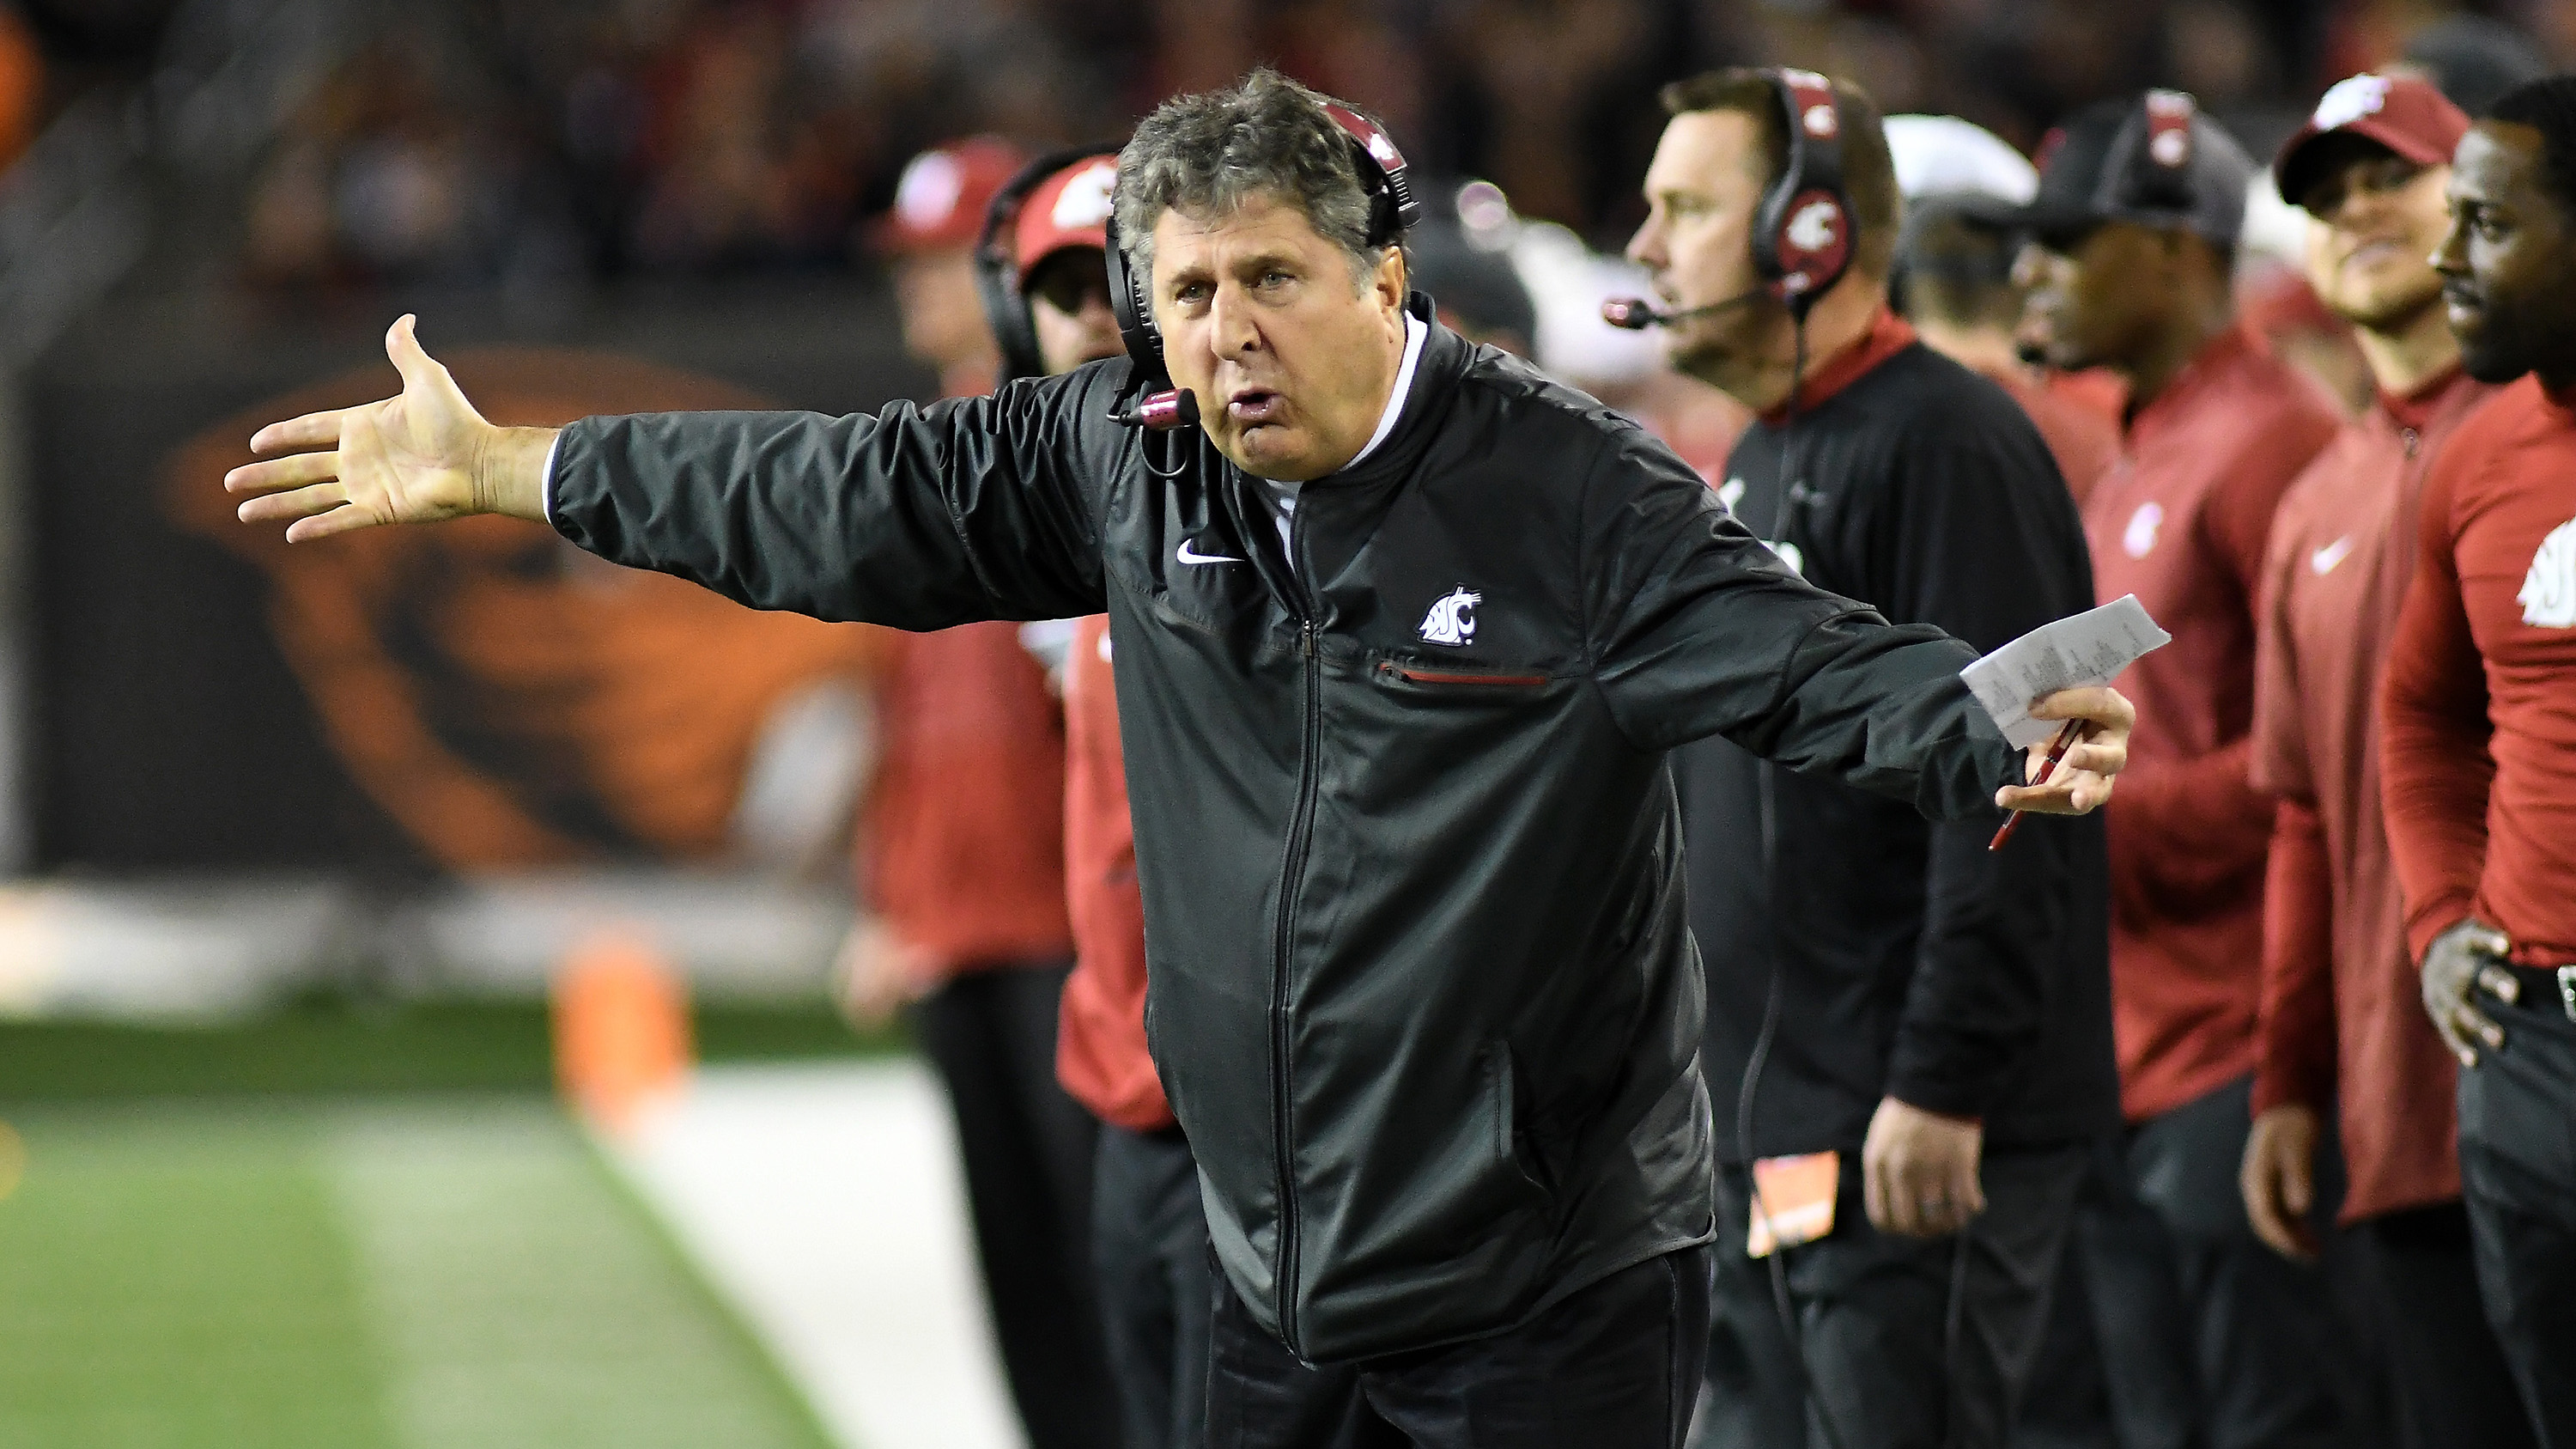 Mike Leach answers question about Pac-12 coach brawl (video)